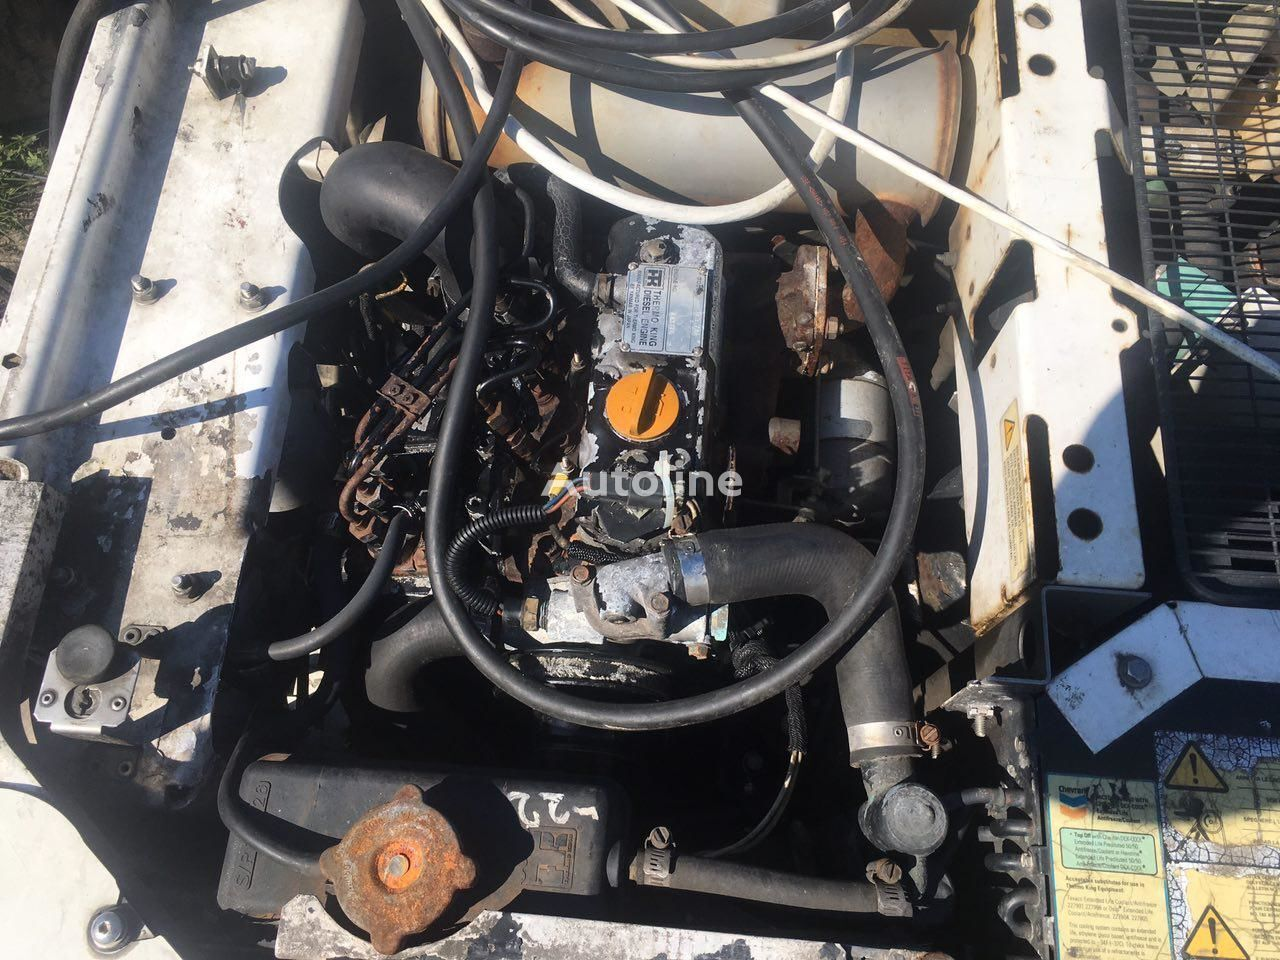 THERMO KING TK3.74A (TK3.74A TK374A) engine for THERMO KING refrigeration unit